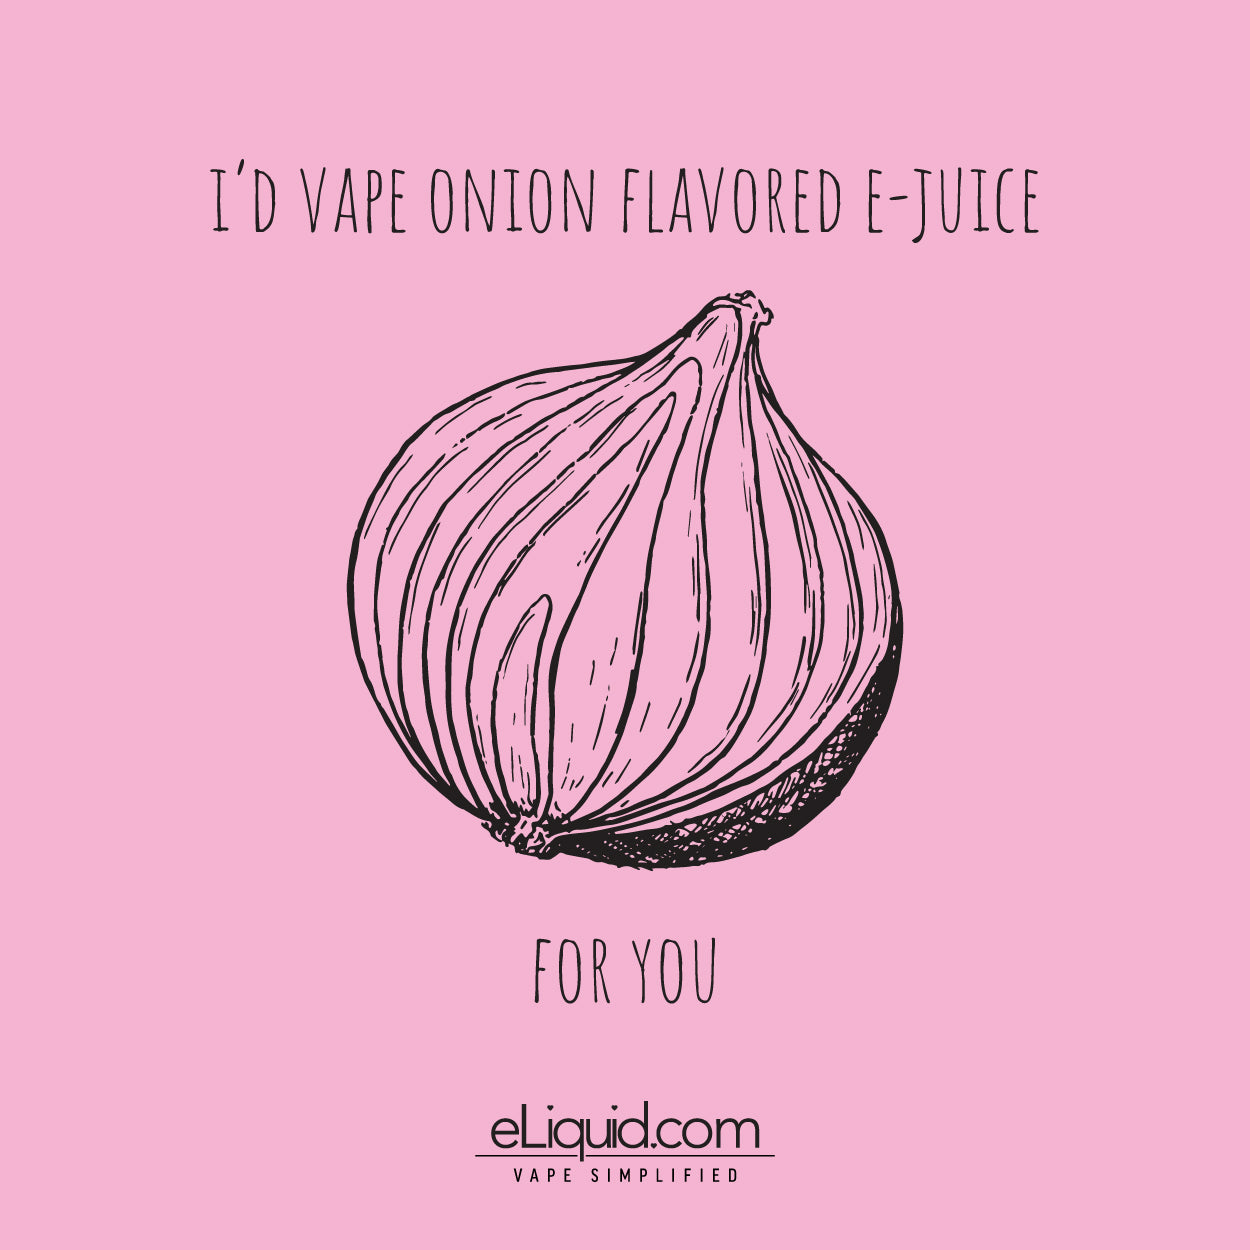 I'd vape onion flavored E-Juice for you